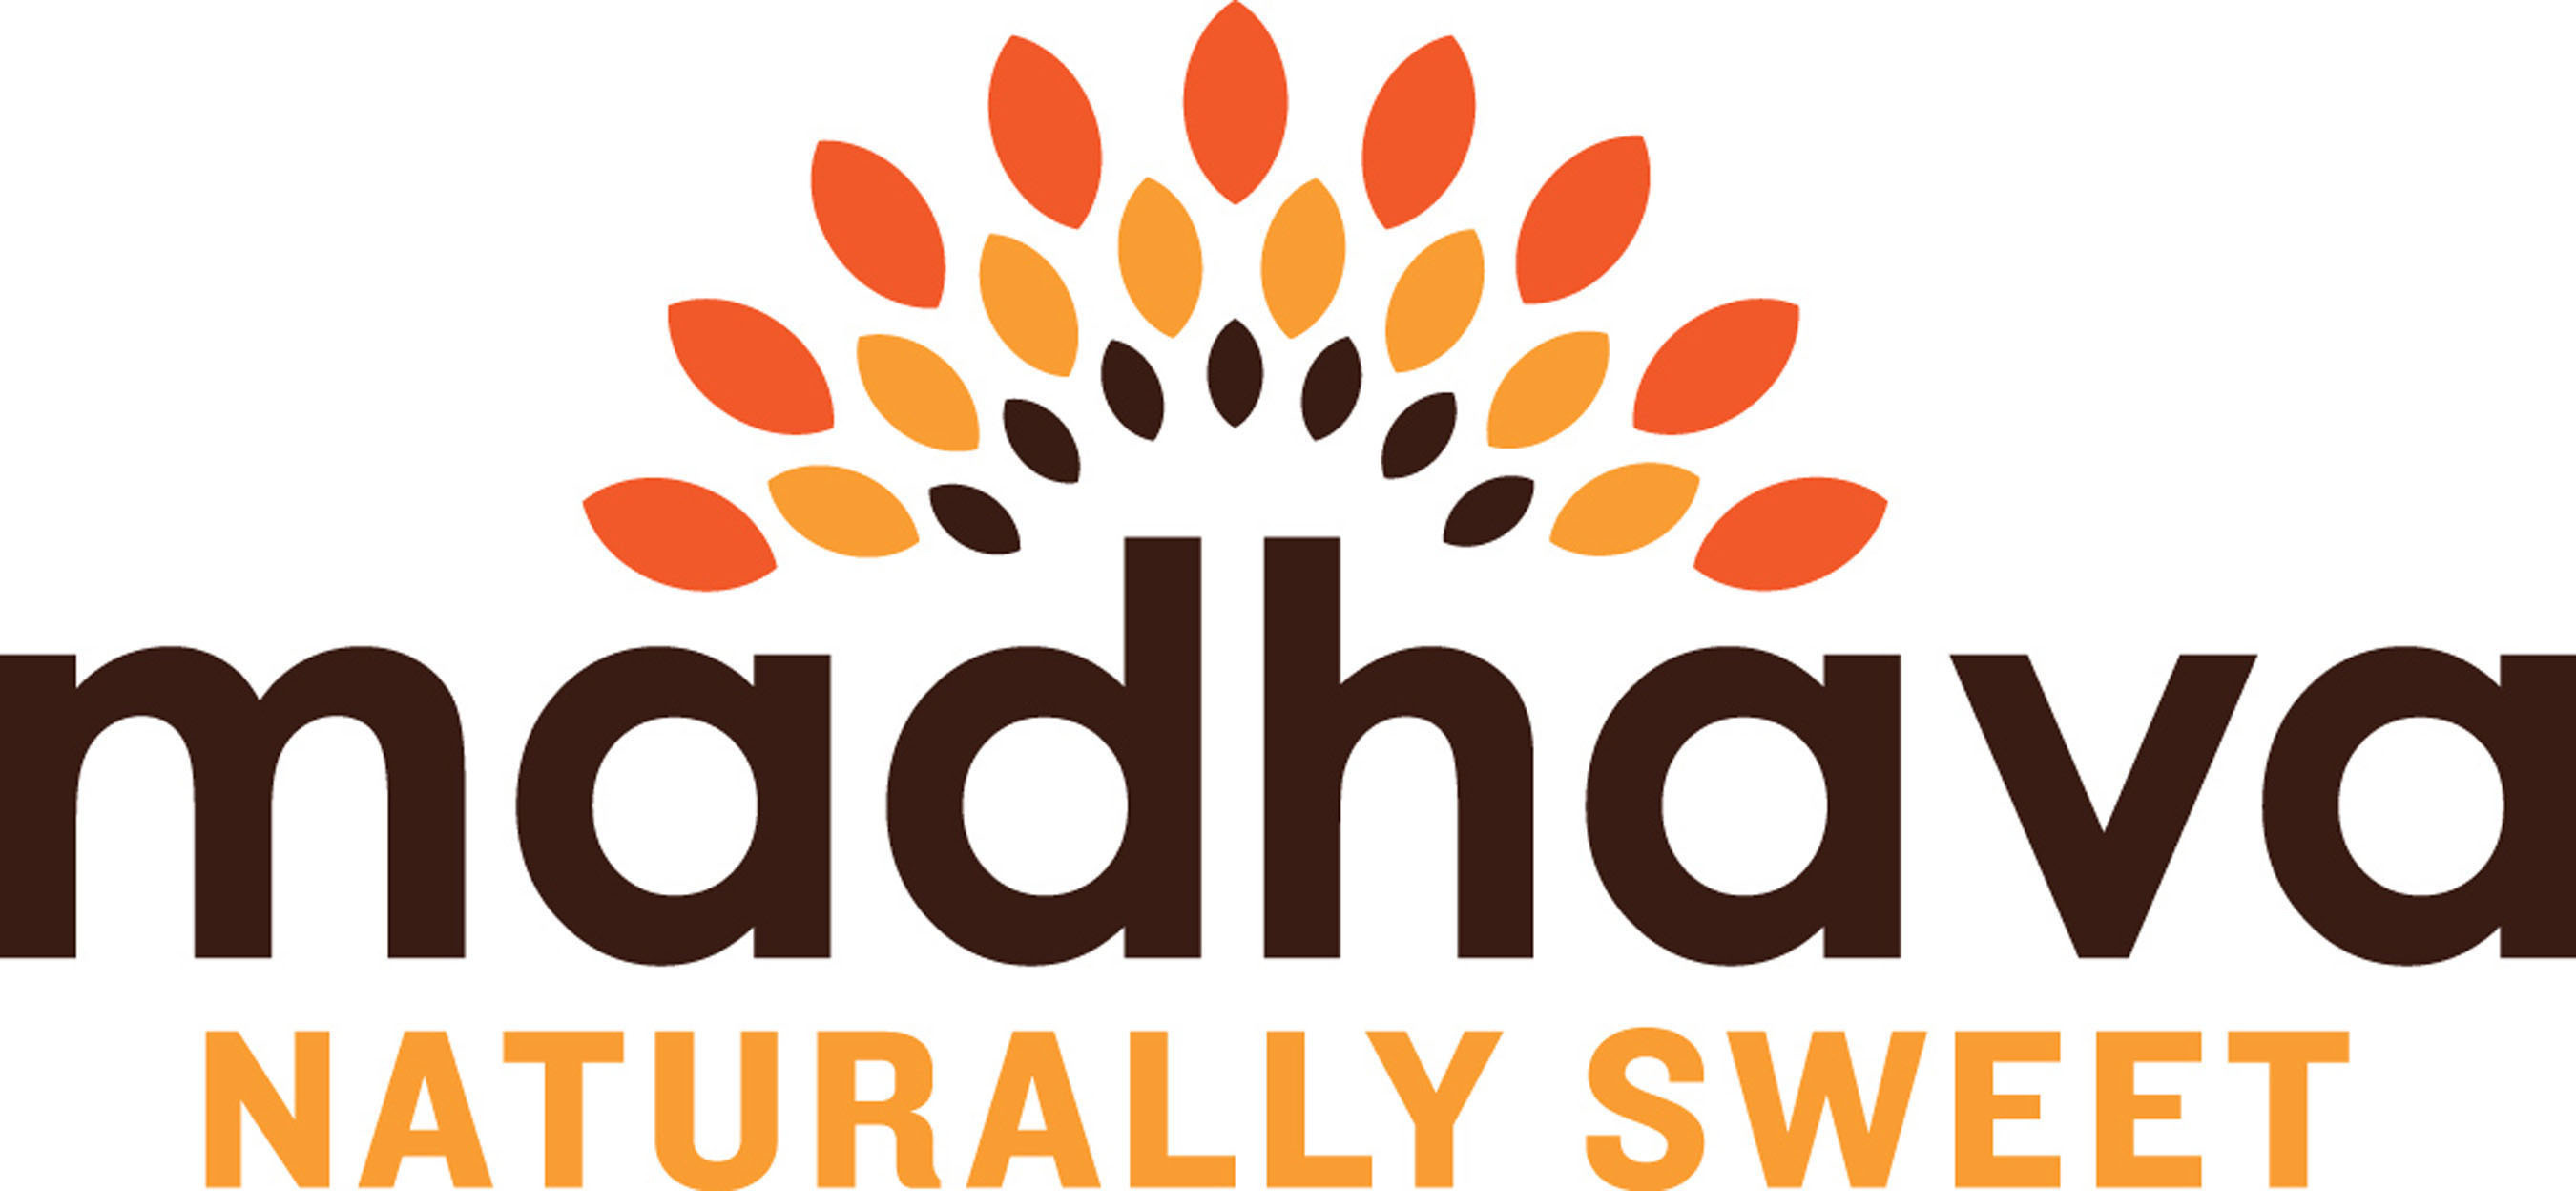 Since our humble beginnings in 1973, we have blossomed beyond honey. Madhava has become a trusted leader in natural sweeteners, dedicated to providing healthier alternatives to highly processed, refined sugars and artificial sweeteners. We're on one naturally sweet mission, to create better-for-you options for all of your favorite sweet treats.